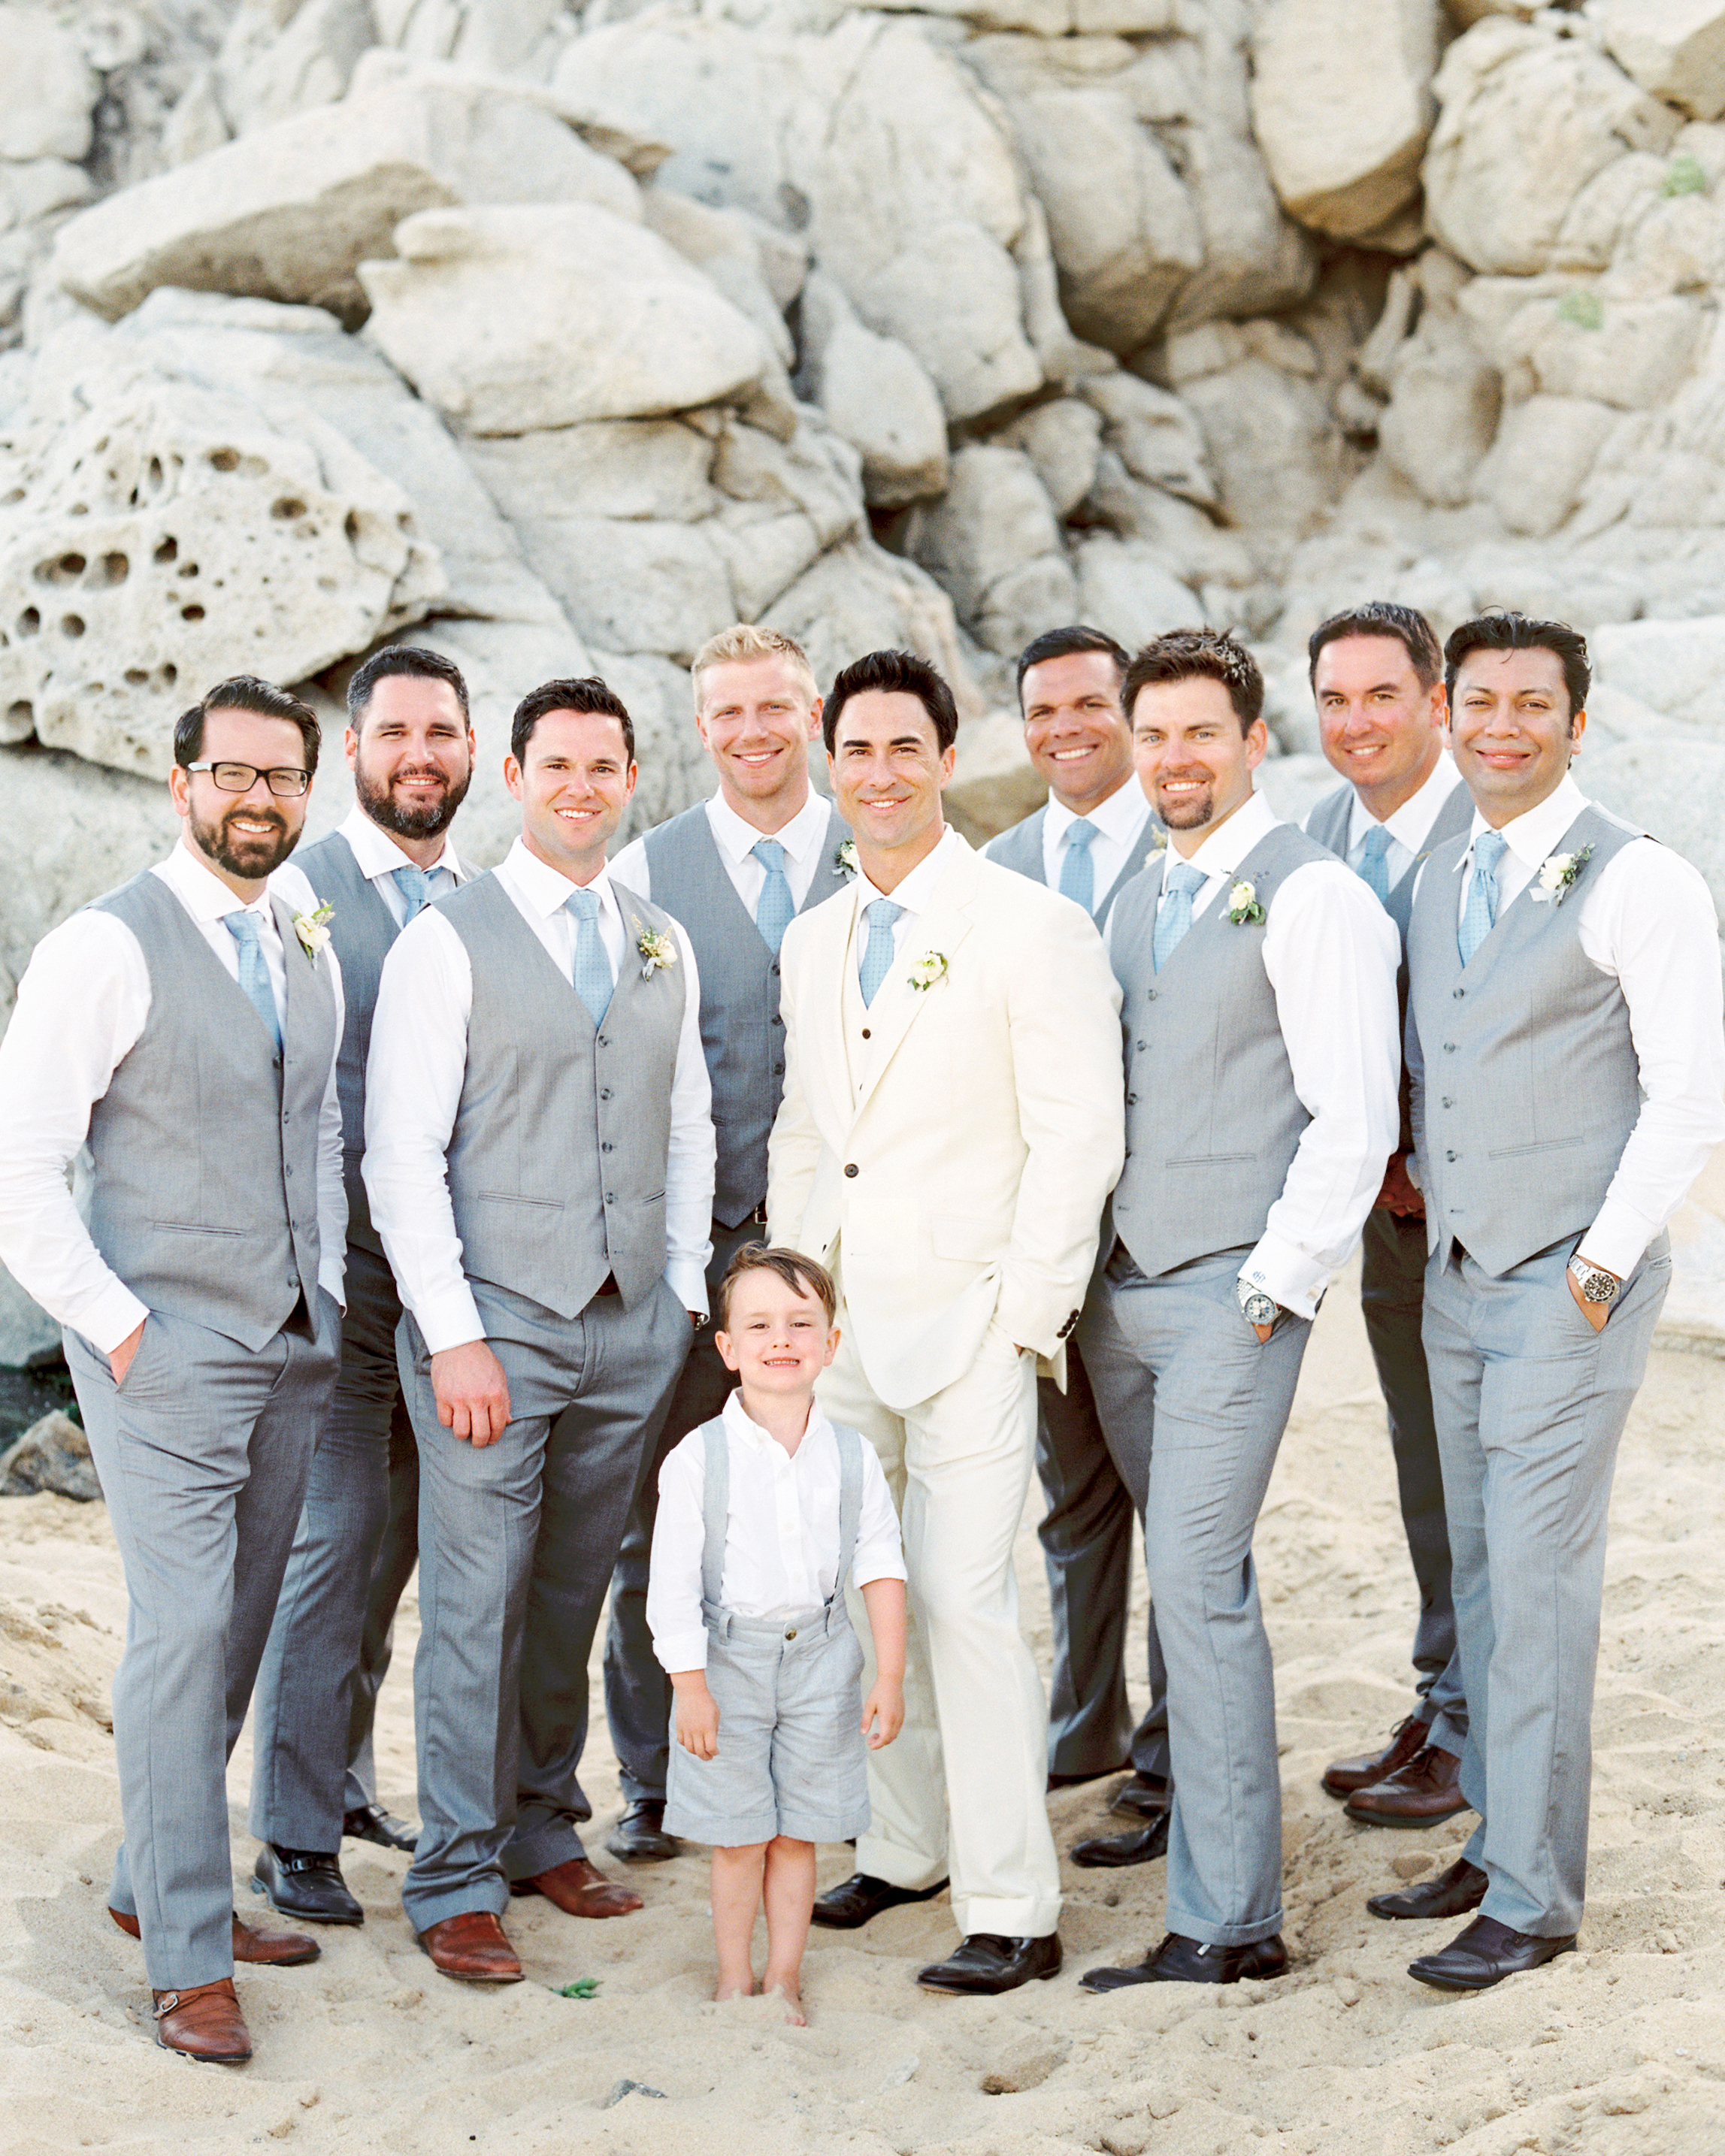 megan-jeremy-wedding-groomsmen-44-s112680-0216.jpg